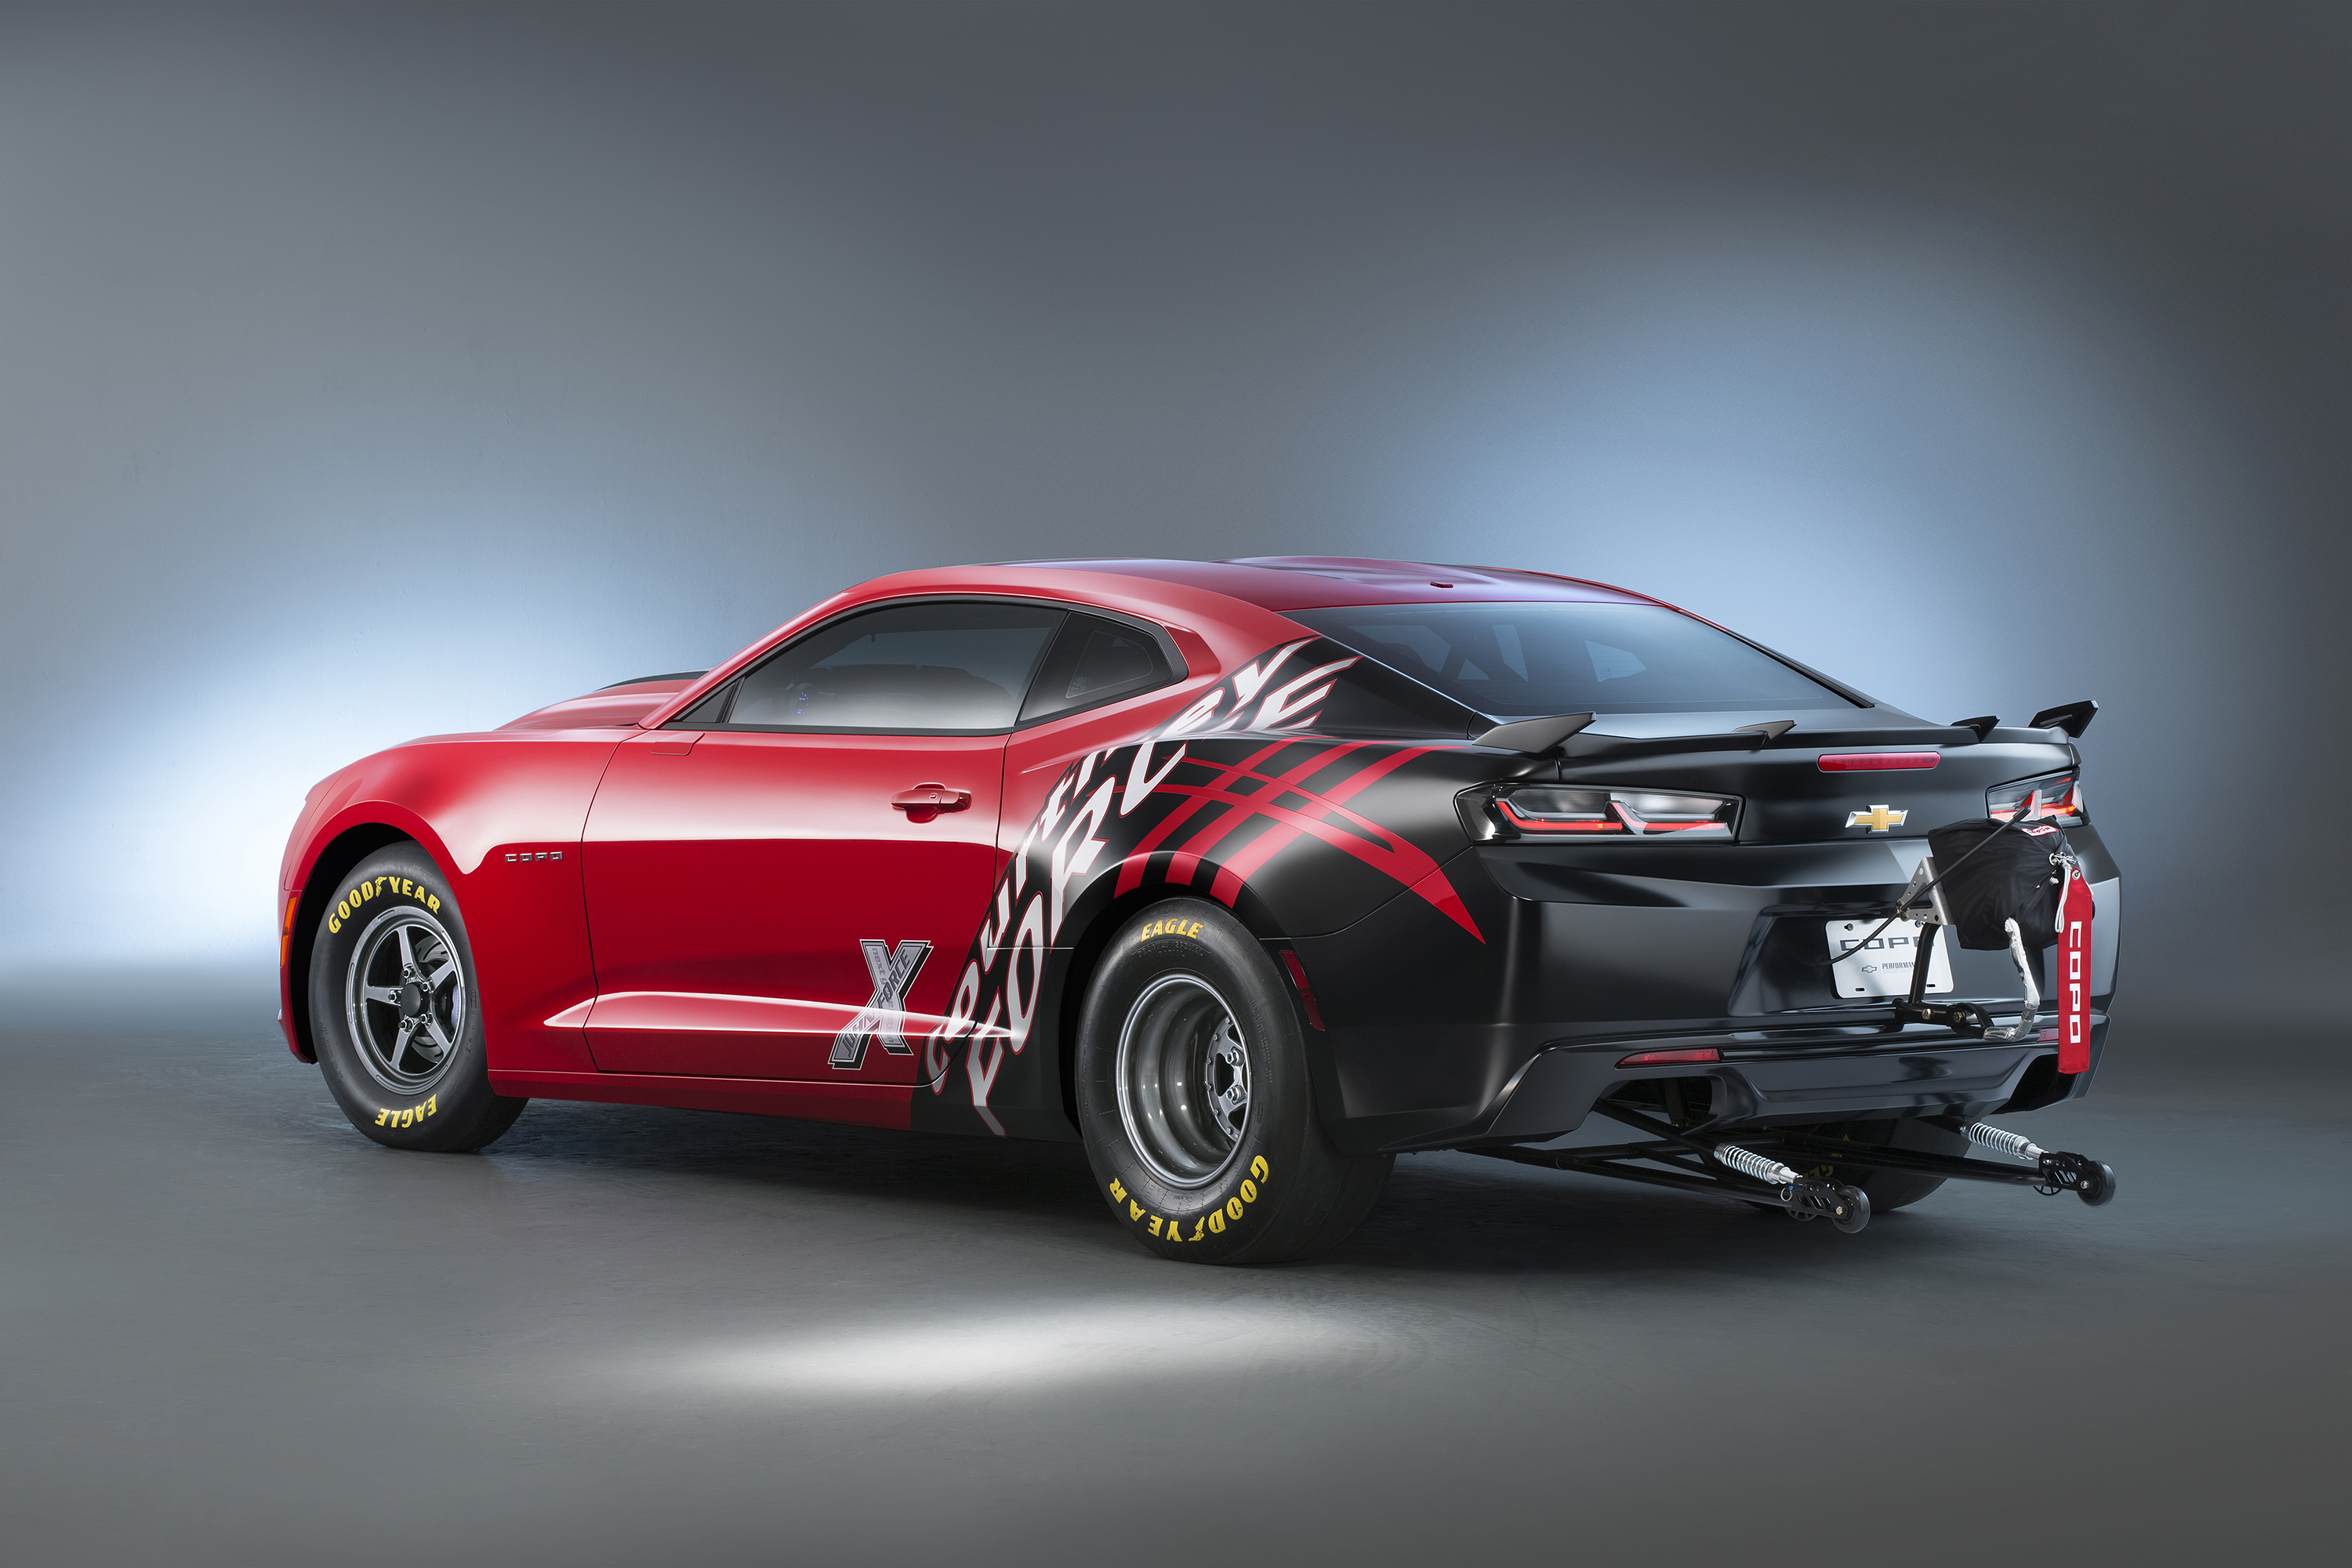 Chevrolet Will Build 69 Of The Factory Race Cars In 2016 Extending Production Legacy